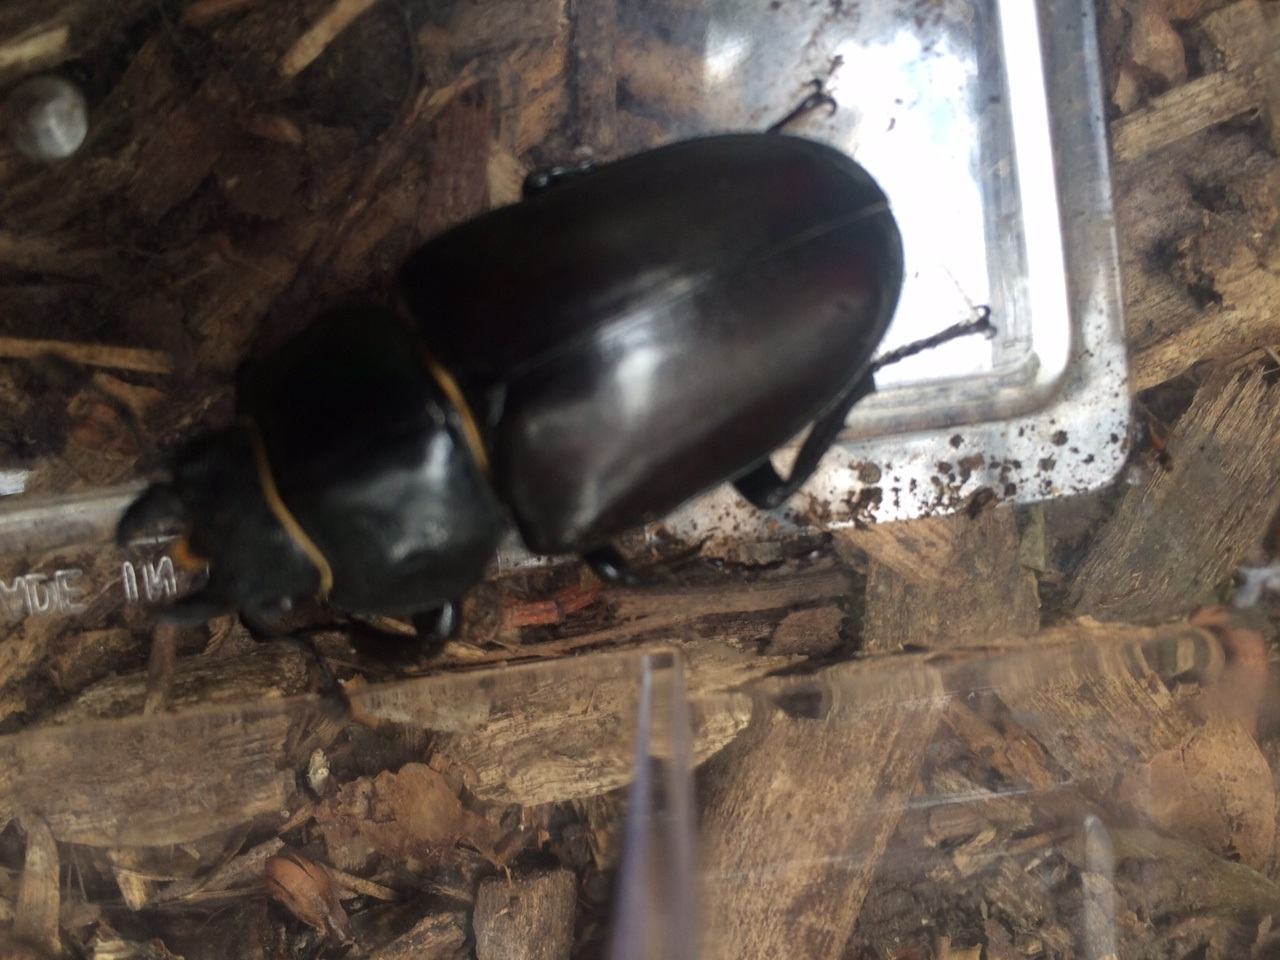 A beautiful female stag beetle.